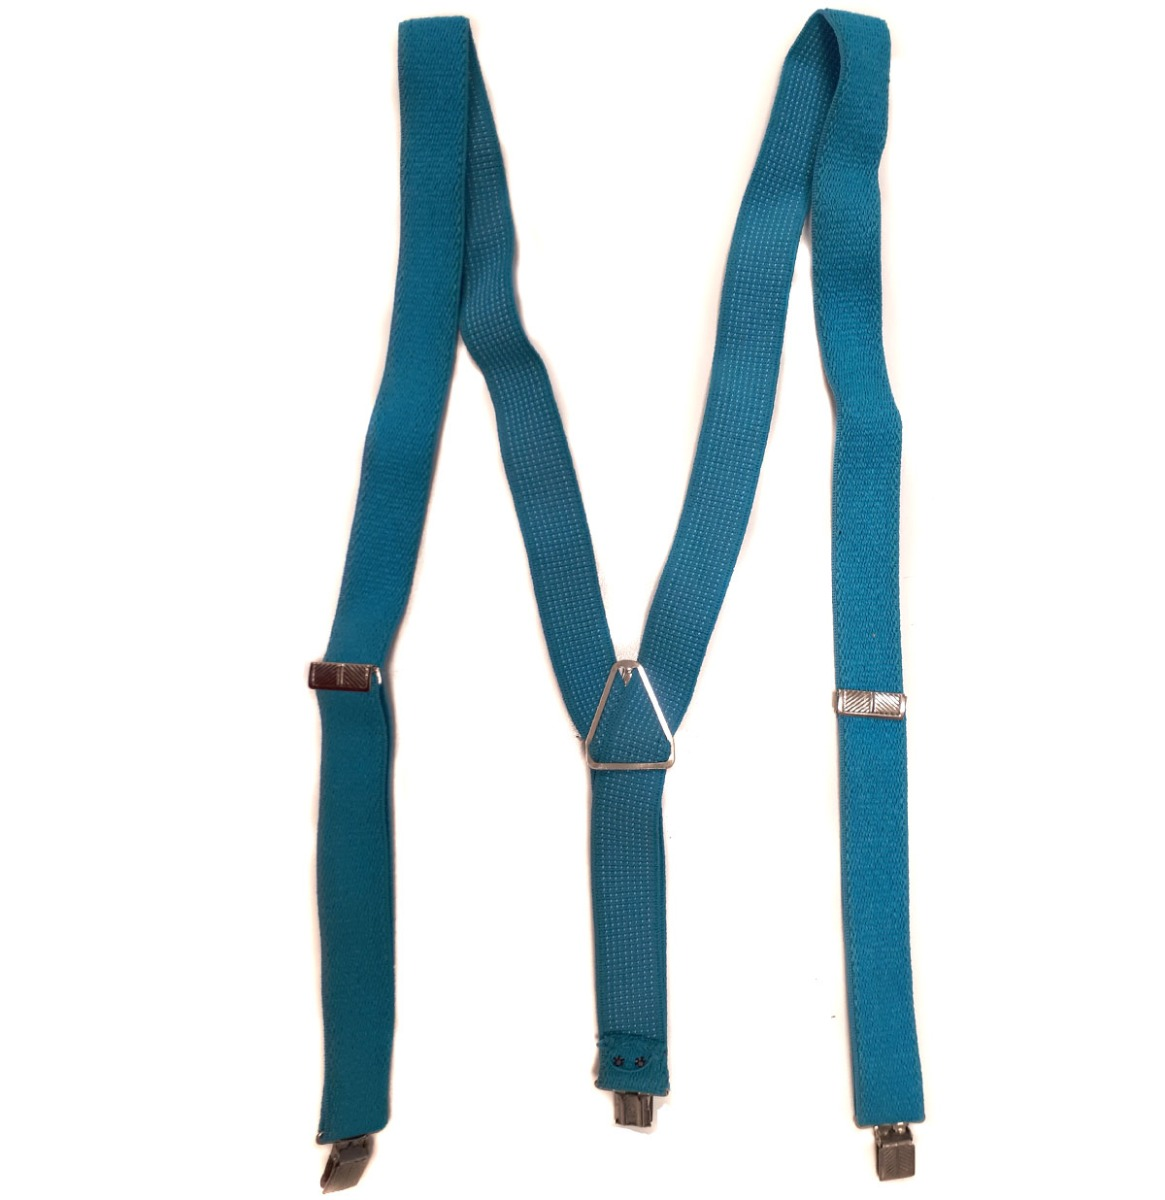 Stretch Bretels One Size Turquoise